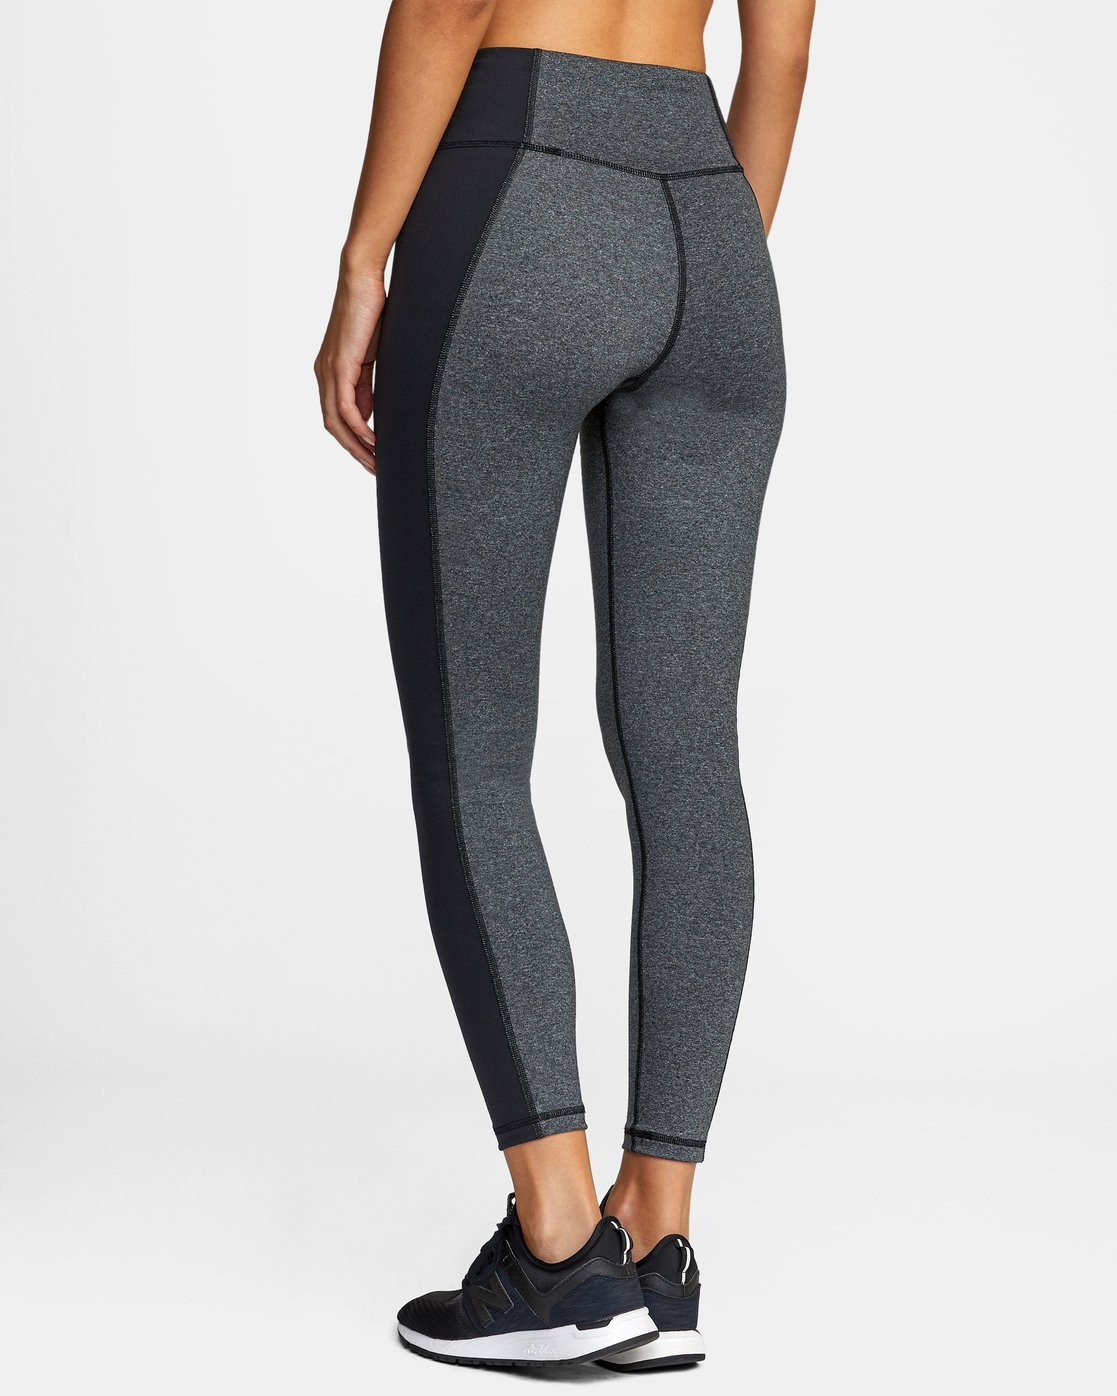 4 EVERLAST LACE UP SPORT LEGGING Grey TQ153REL RVCA